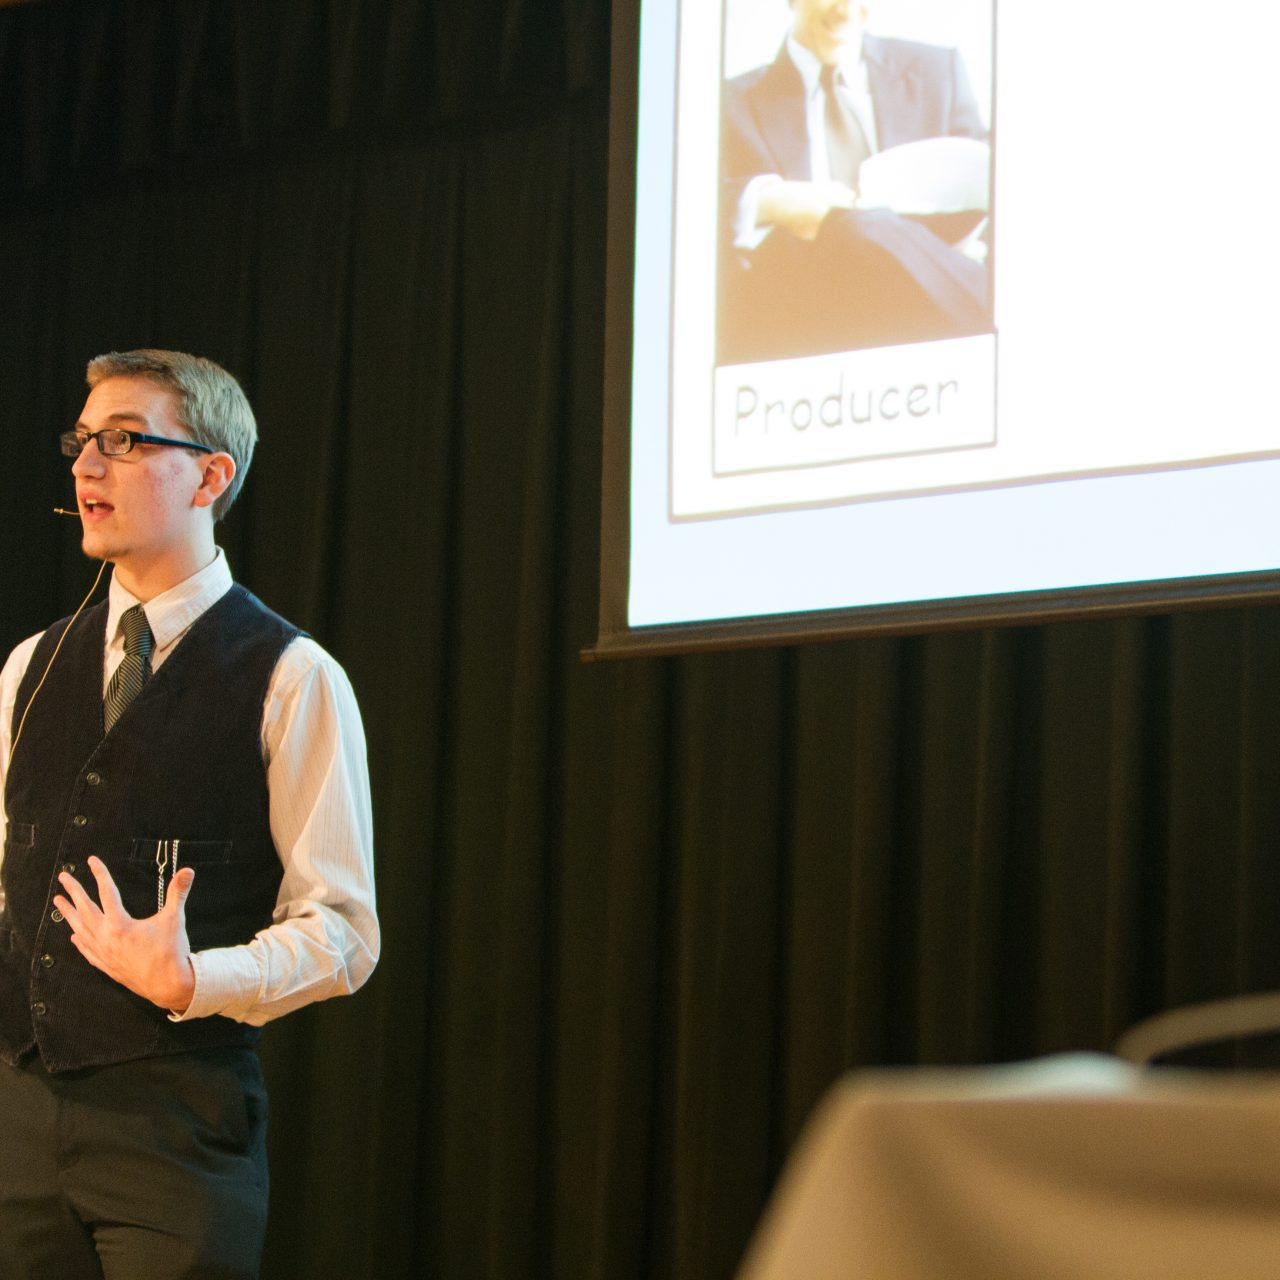 Student presenting a game on stage with a projected screen behind him